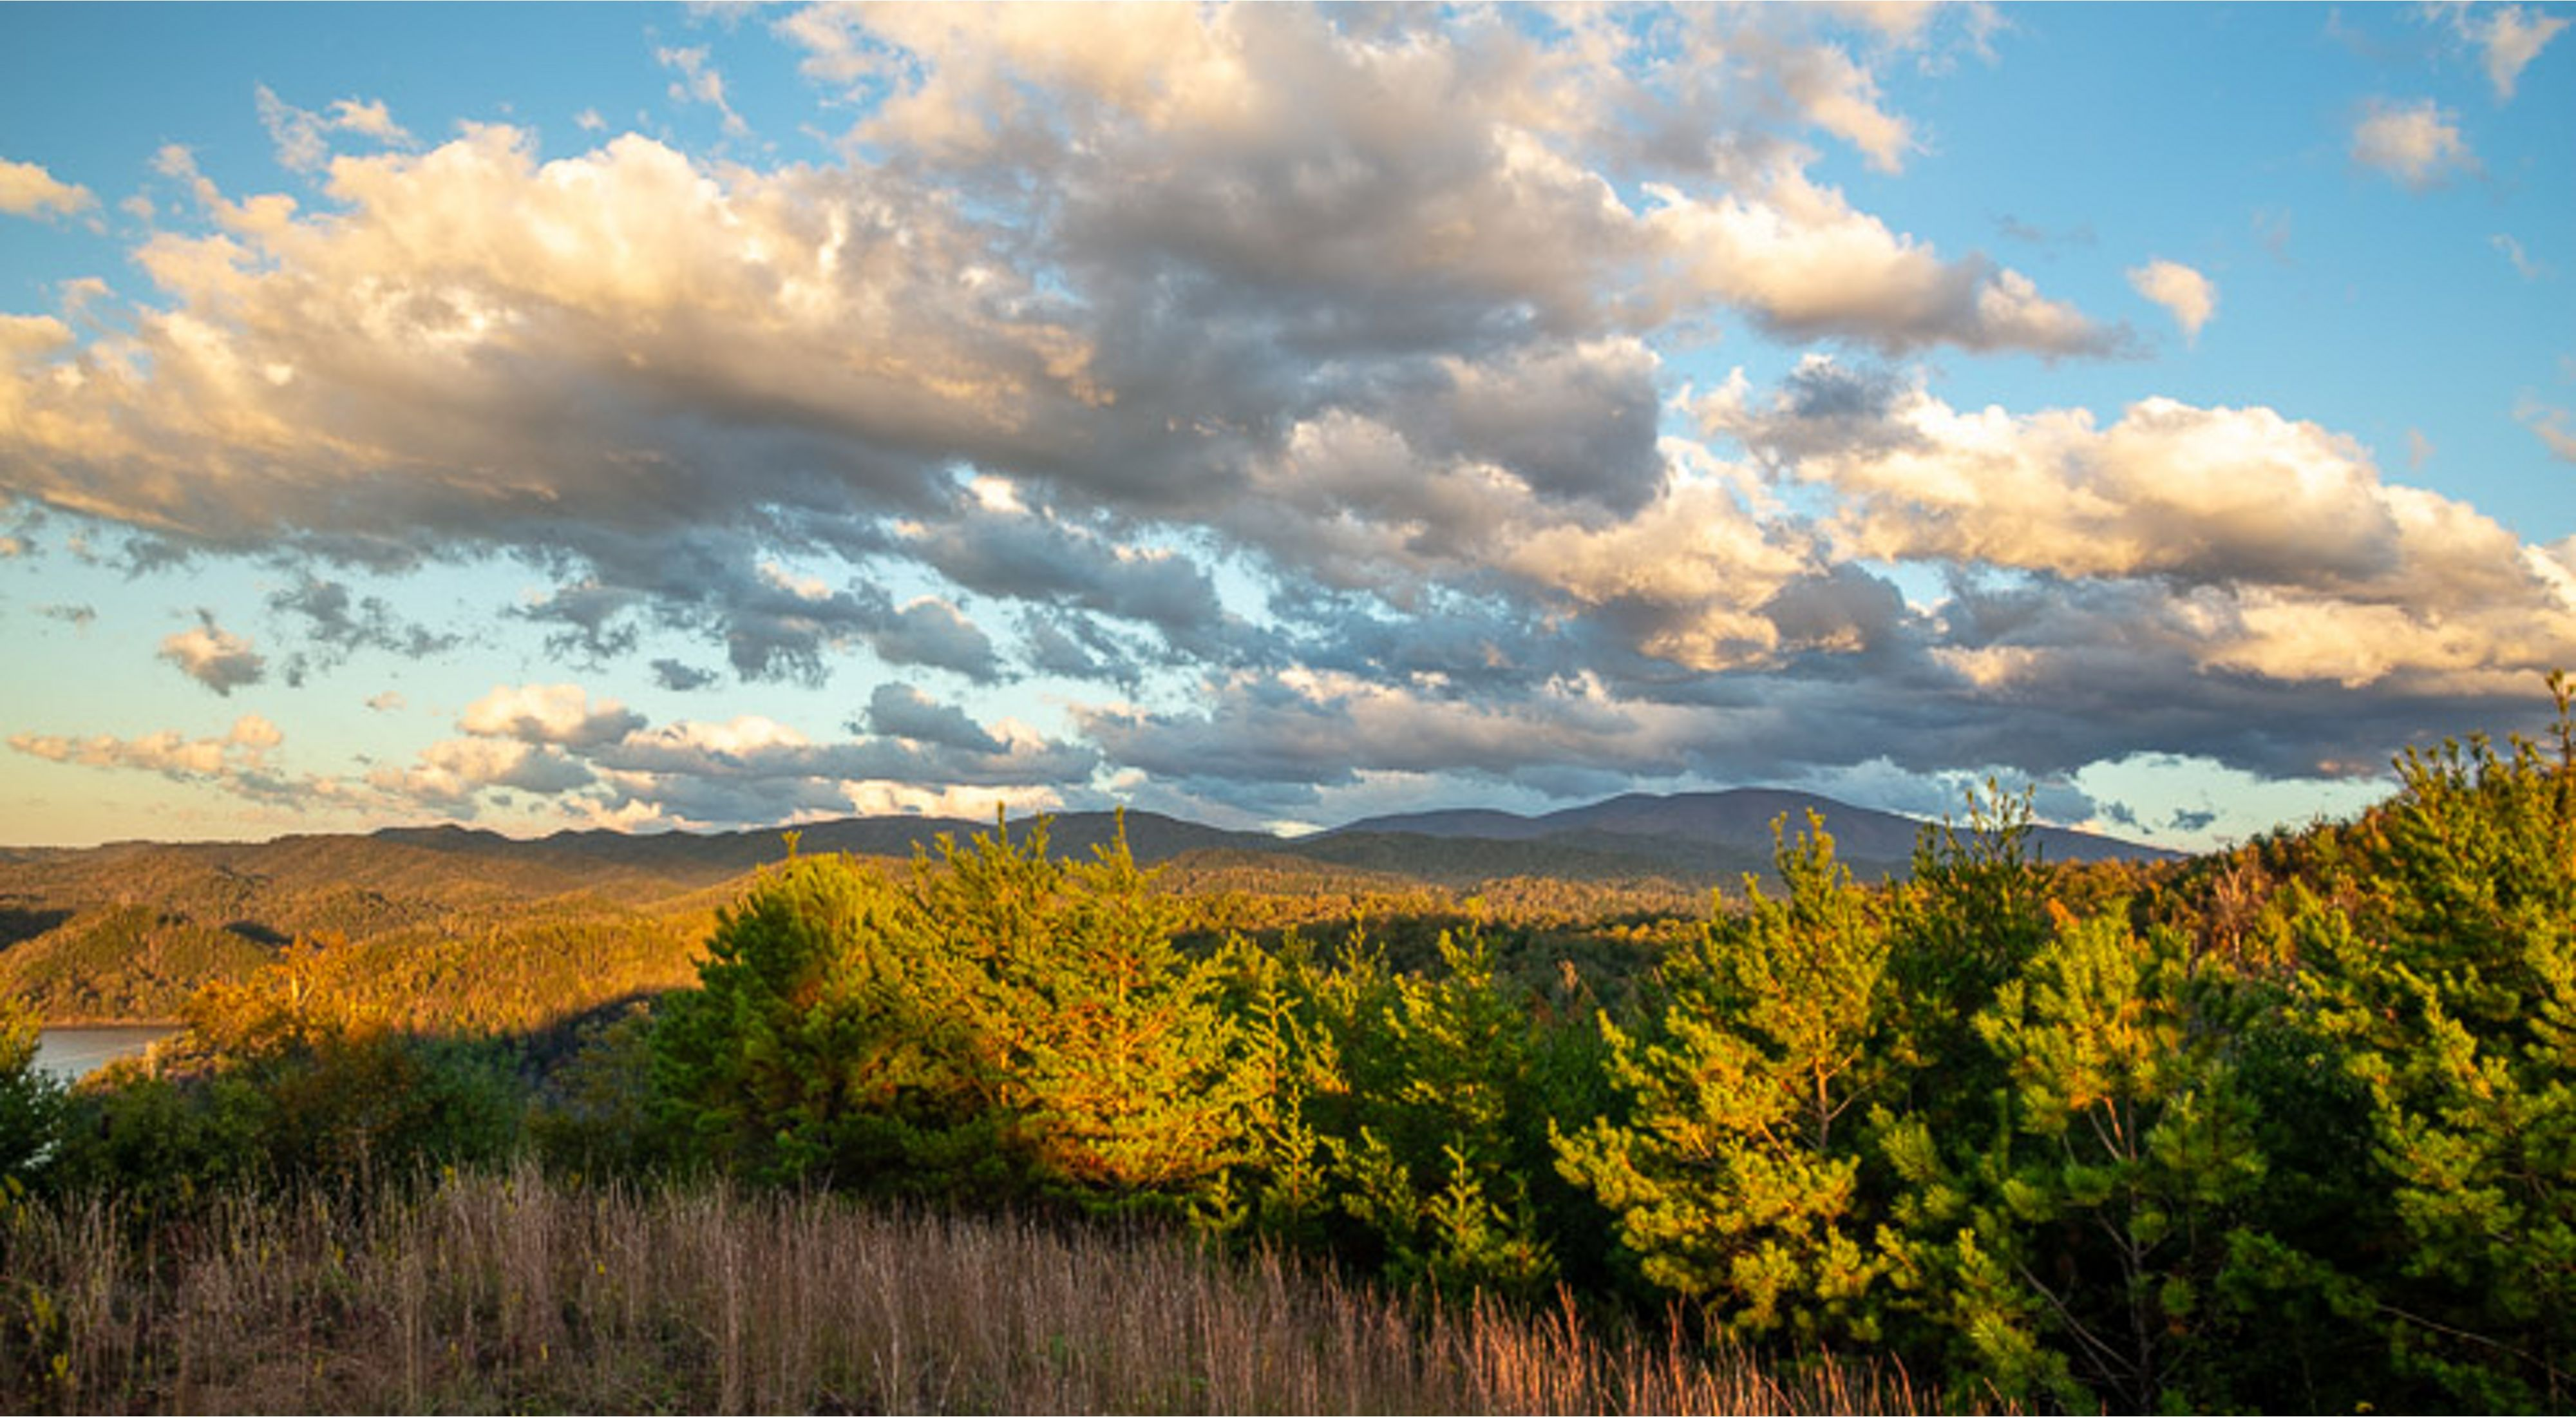 Clouds hover over a sunny mountain valley.